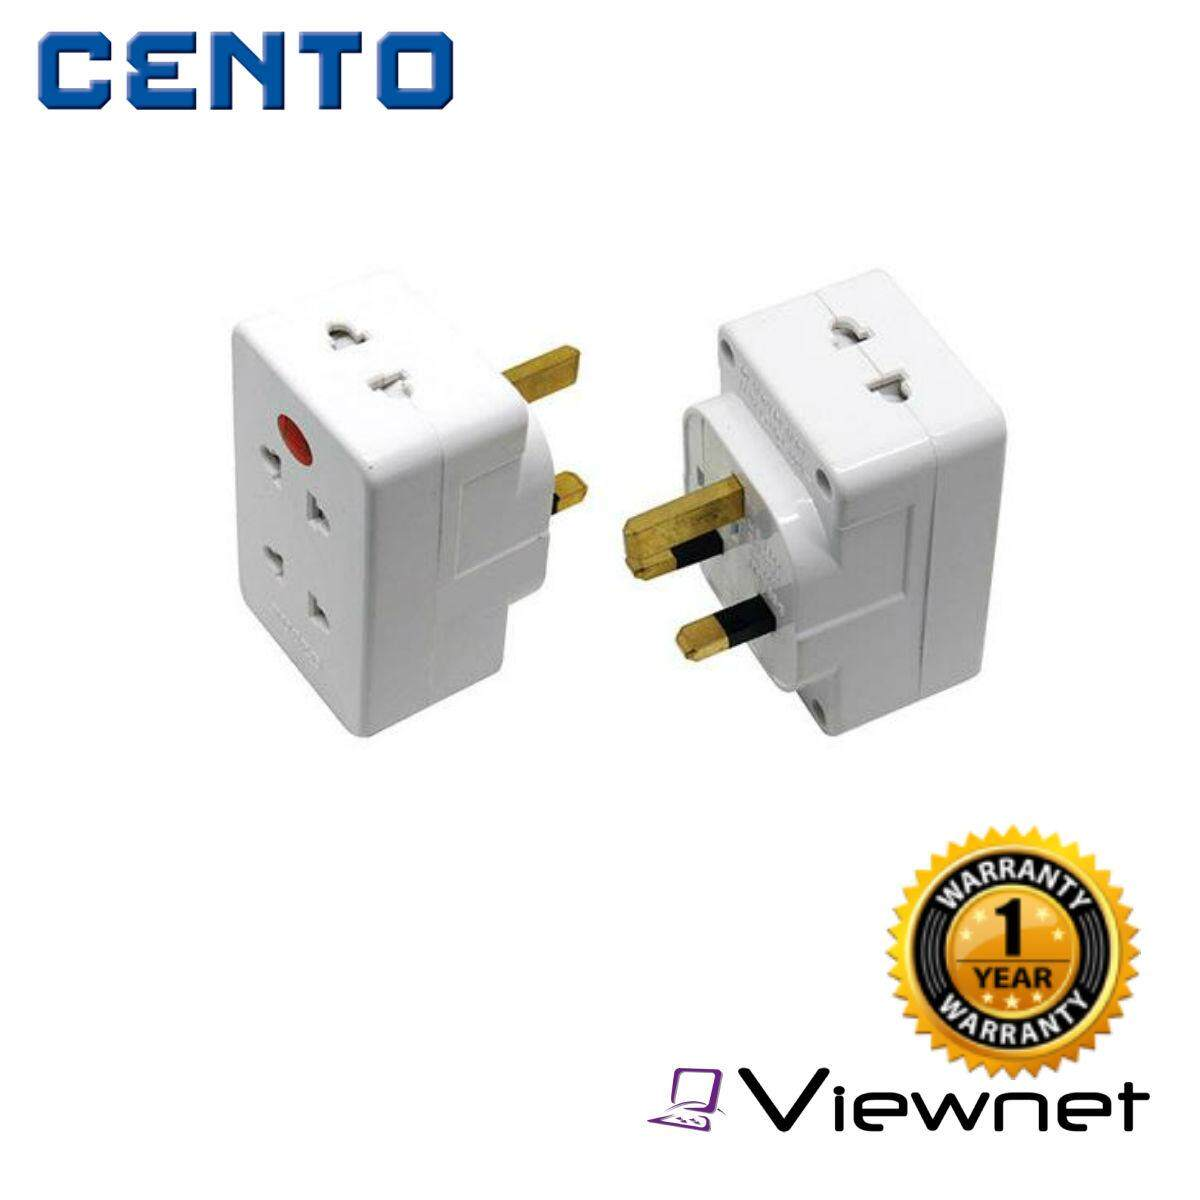 Cento 3 Pin To 4 Way 2 Pin With Fused Adapter (FIT-SUM.740)